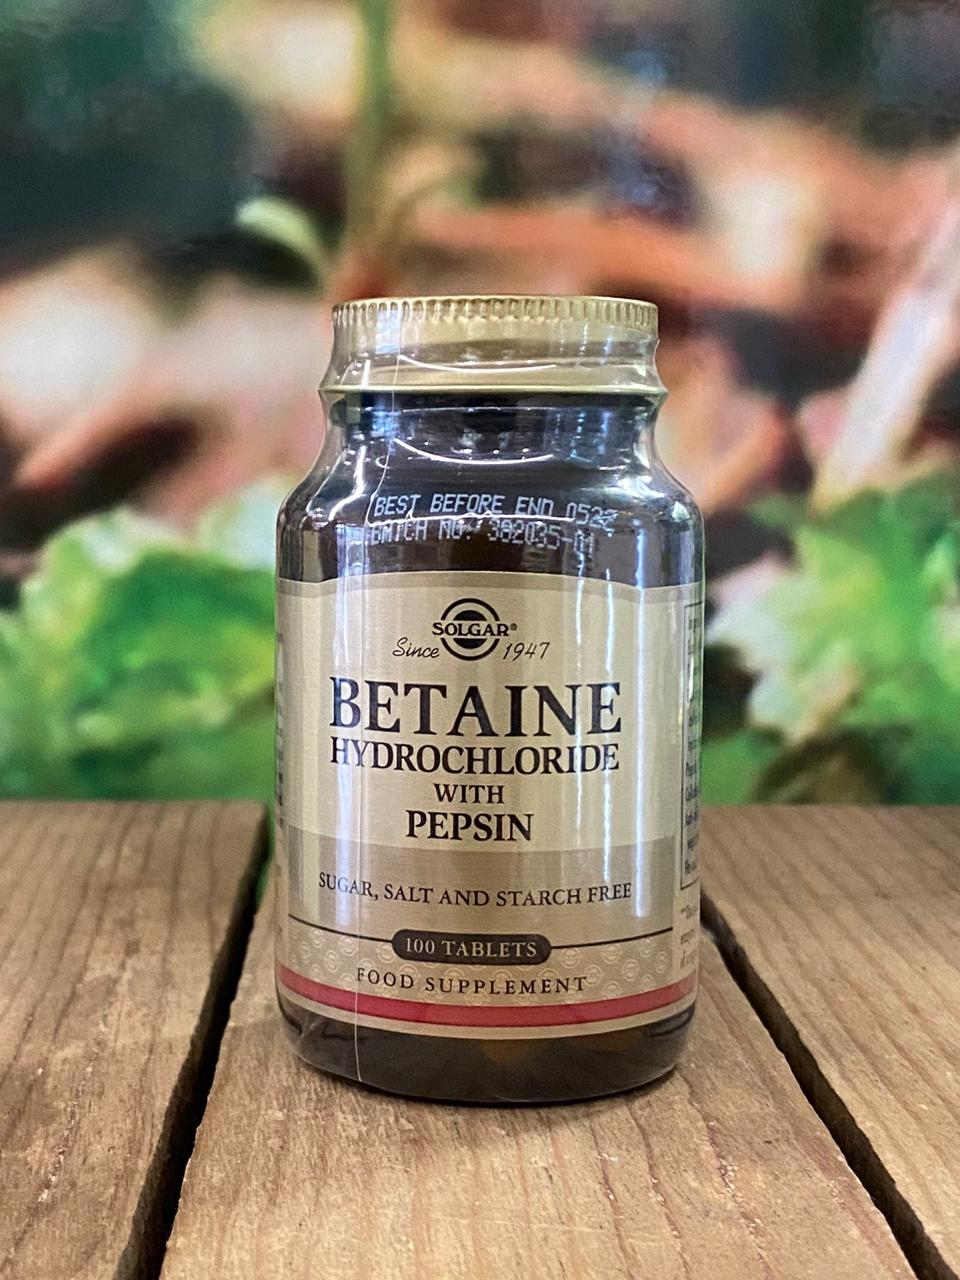 Solgar Betaine Hydrochlorine with Pepsin 100 tablets